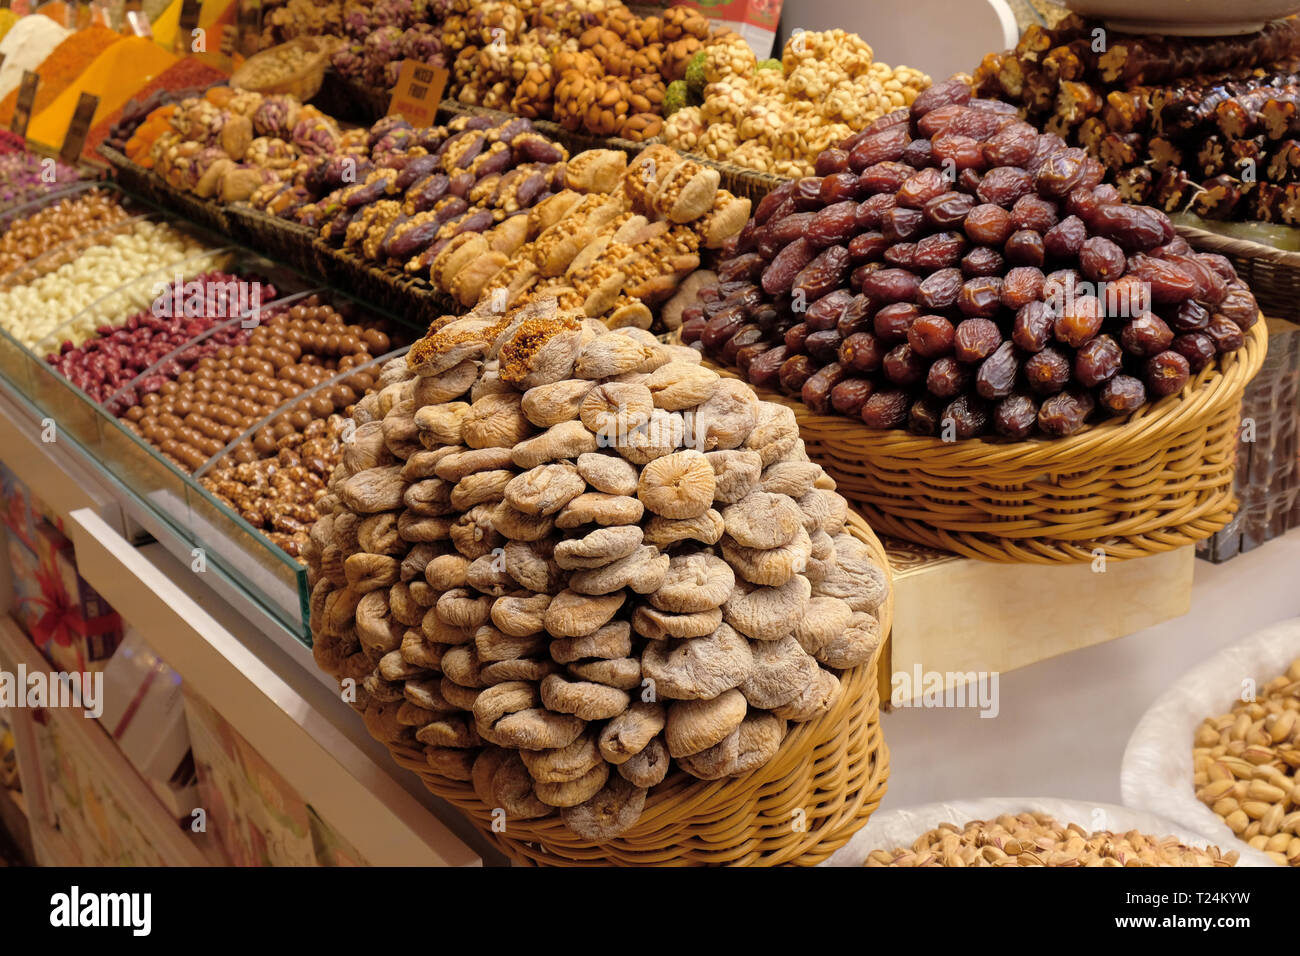 Dried fruits, sweetness, spices and teas sell on the Egyptian market in Istanbul, Turkey - Stock Image